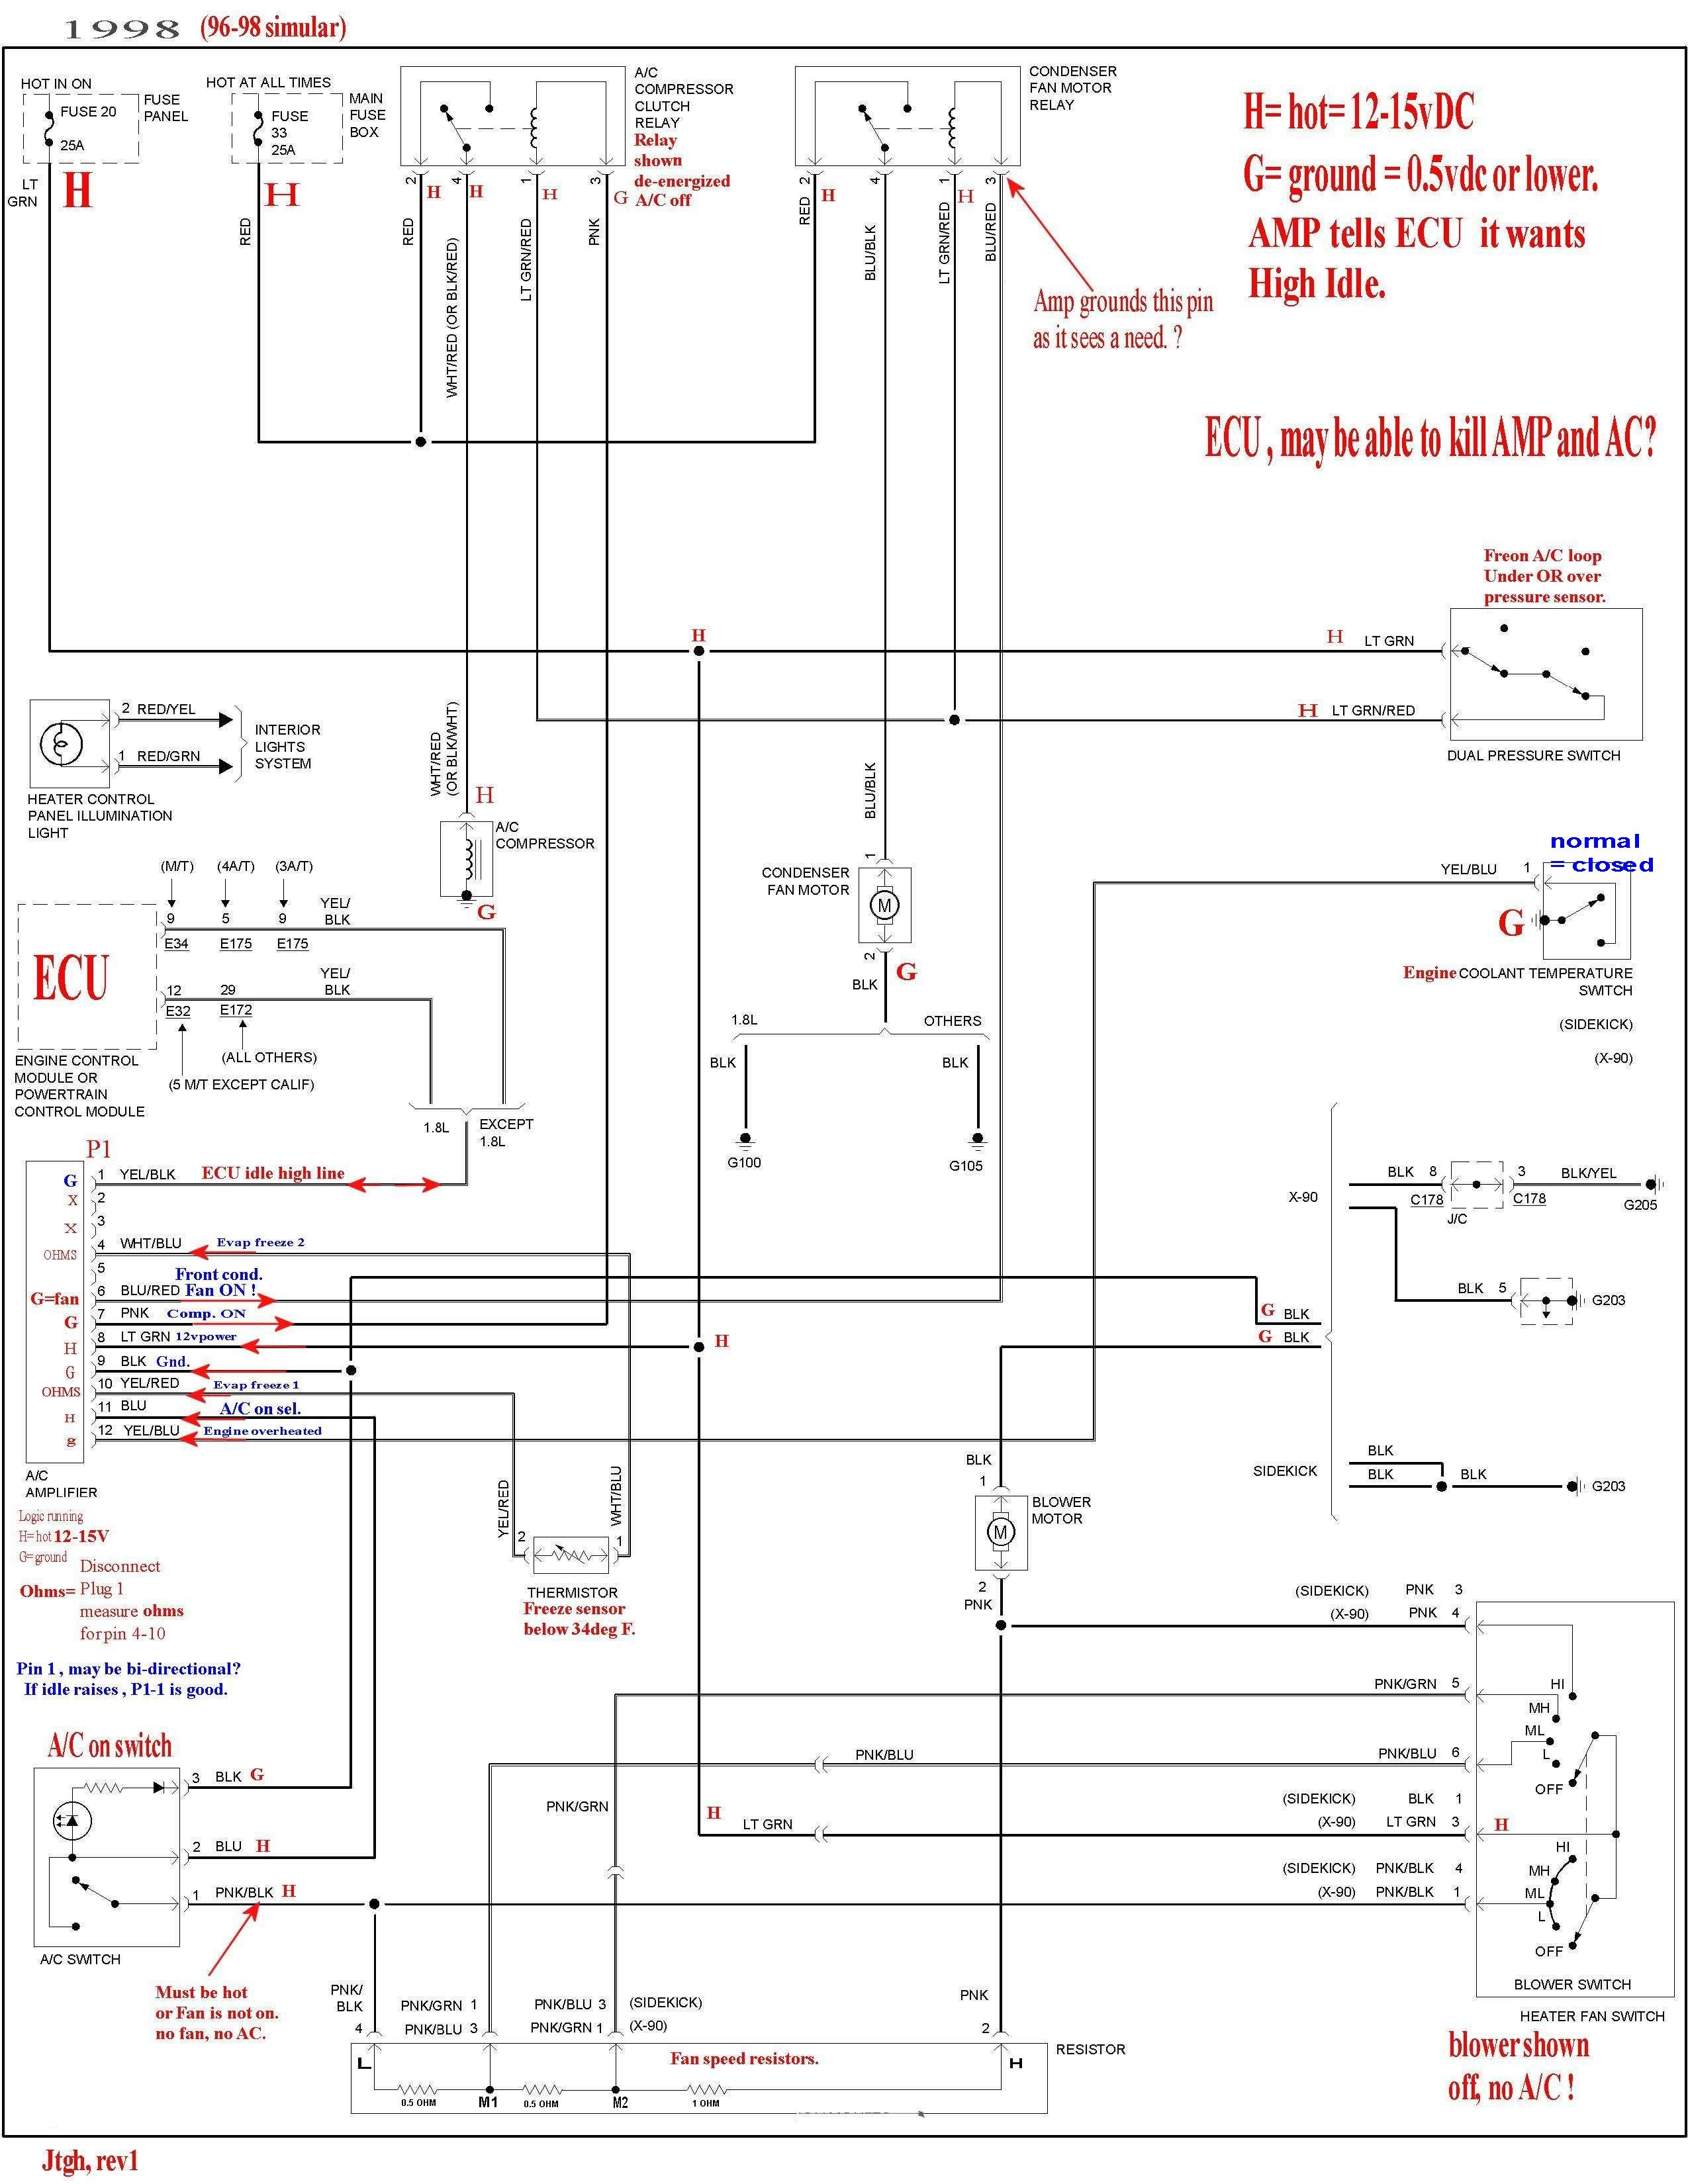 1988 Suzuki Samurai Wiring Diagram Hard to Purchase Find or Buy Car Parts Oe & Oem and Non Oem Of 1988 Suzuki Samurai Wiring Diagram